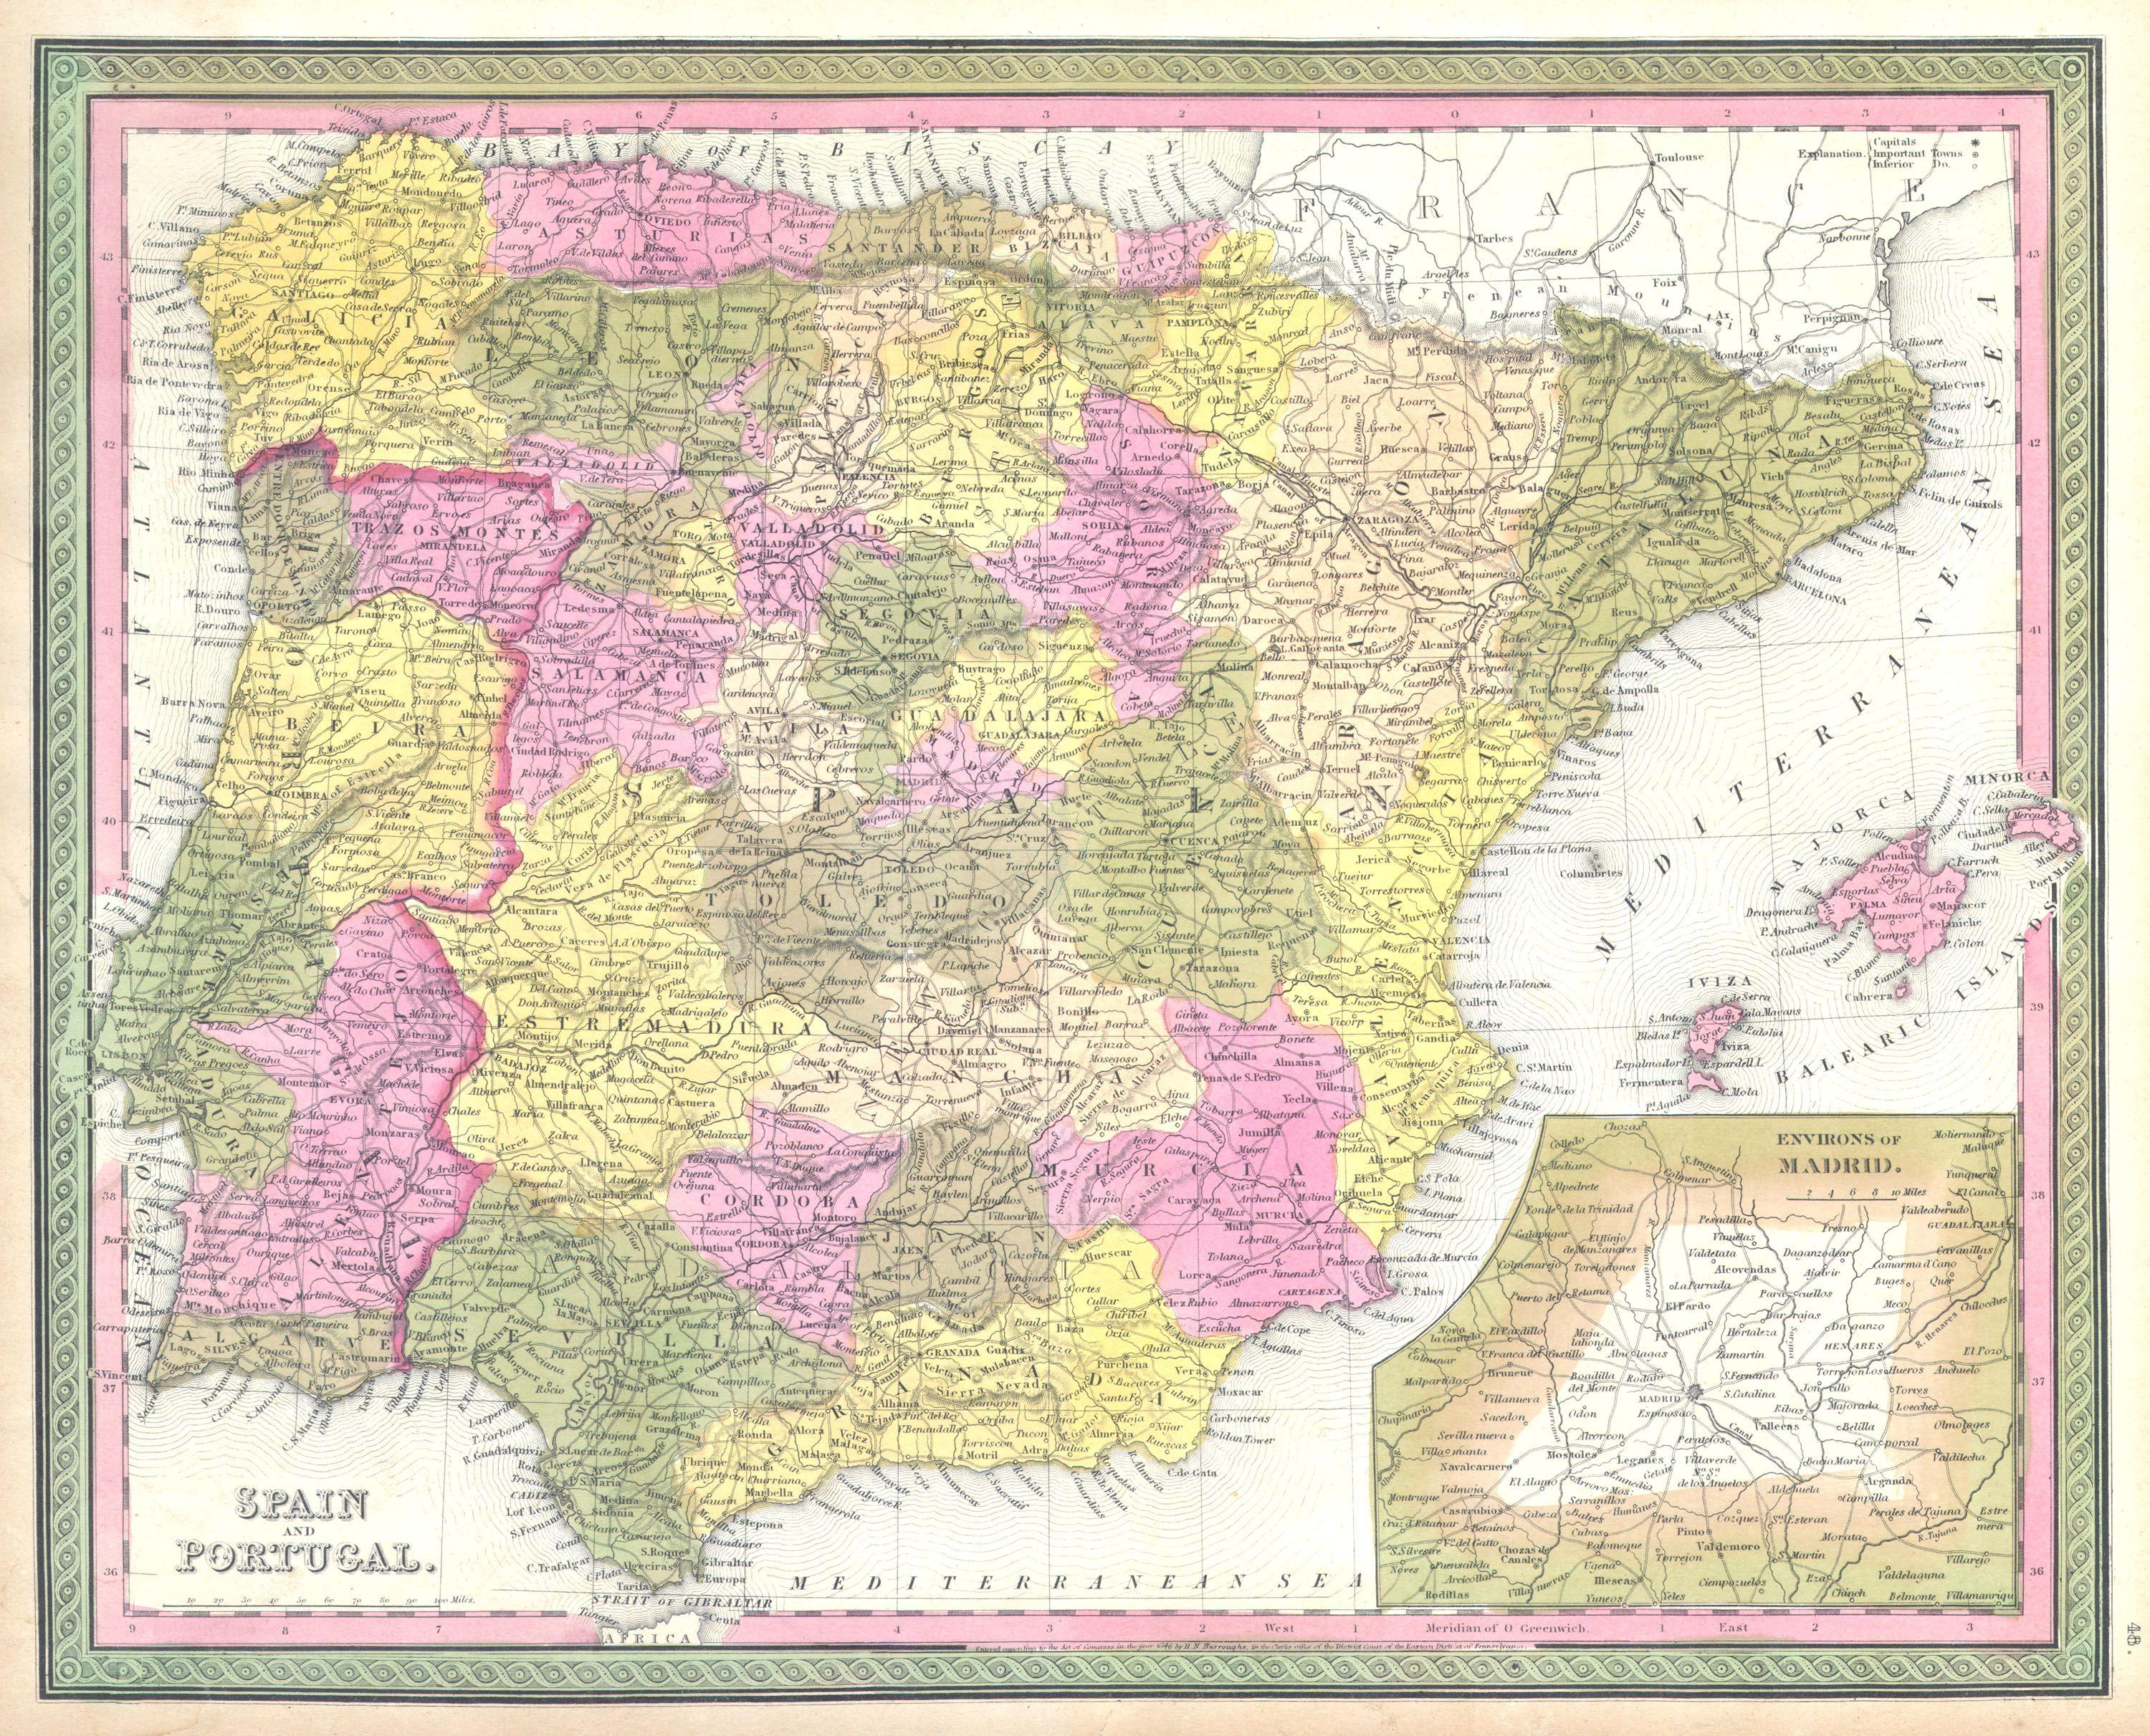 Map Of Portugal And Spain.File 1850 Mitchell Map Of Spain And Portugal Geographicus